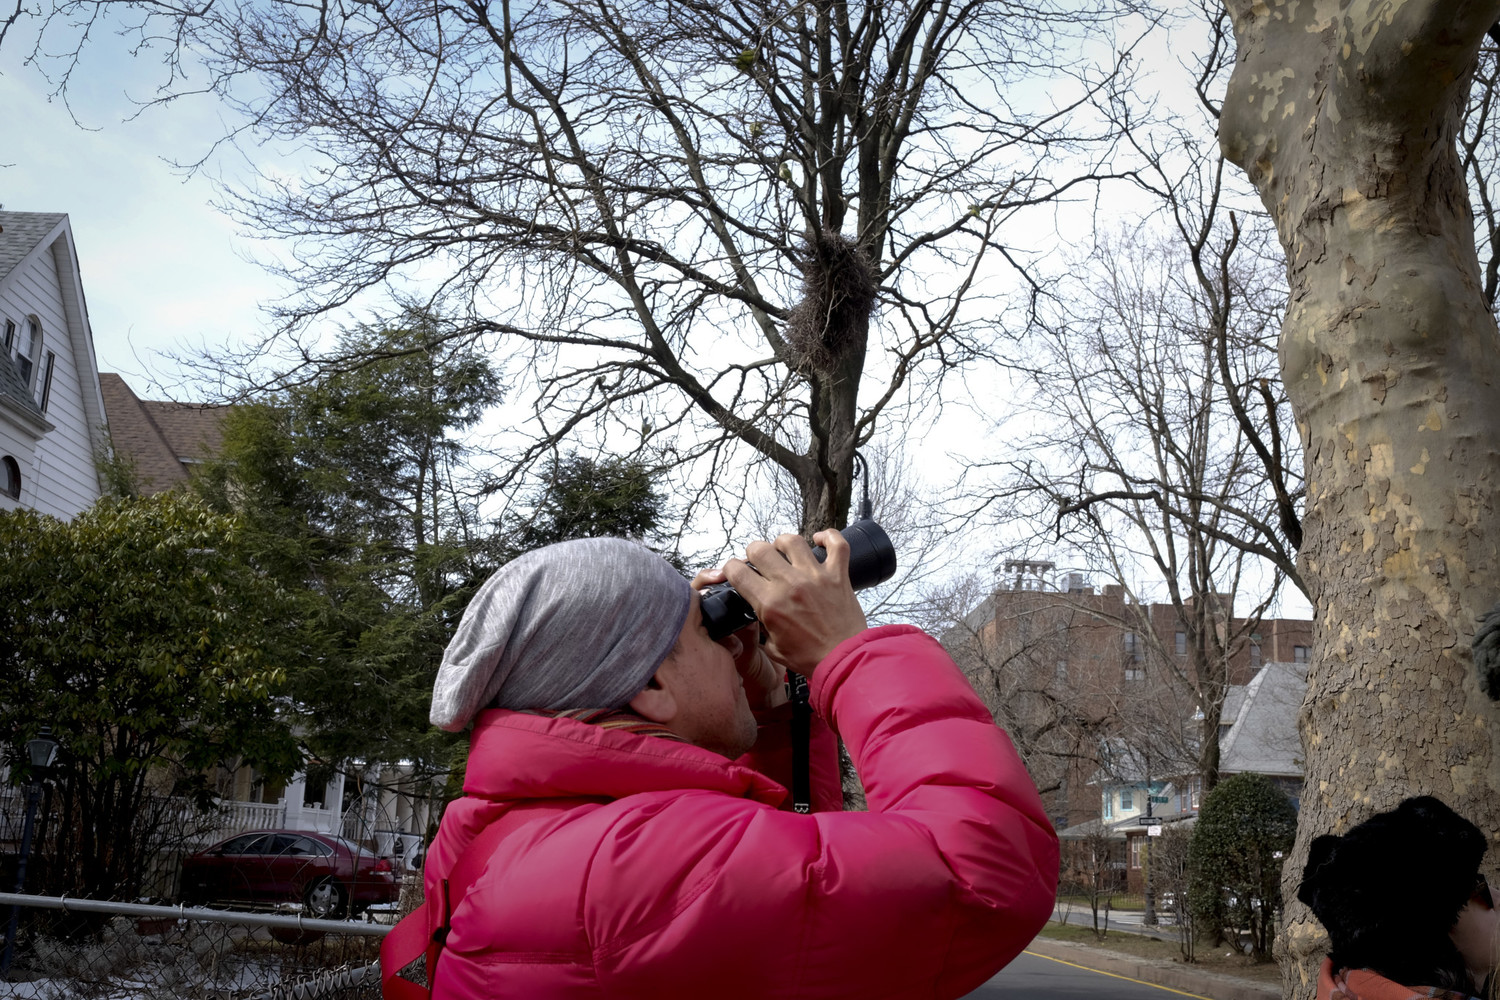 A bird watcher gets an up close look at the Brooklyn parrots with the help of binoculars on the March 5, 2016 tour.